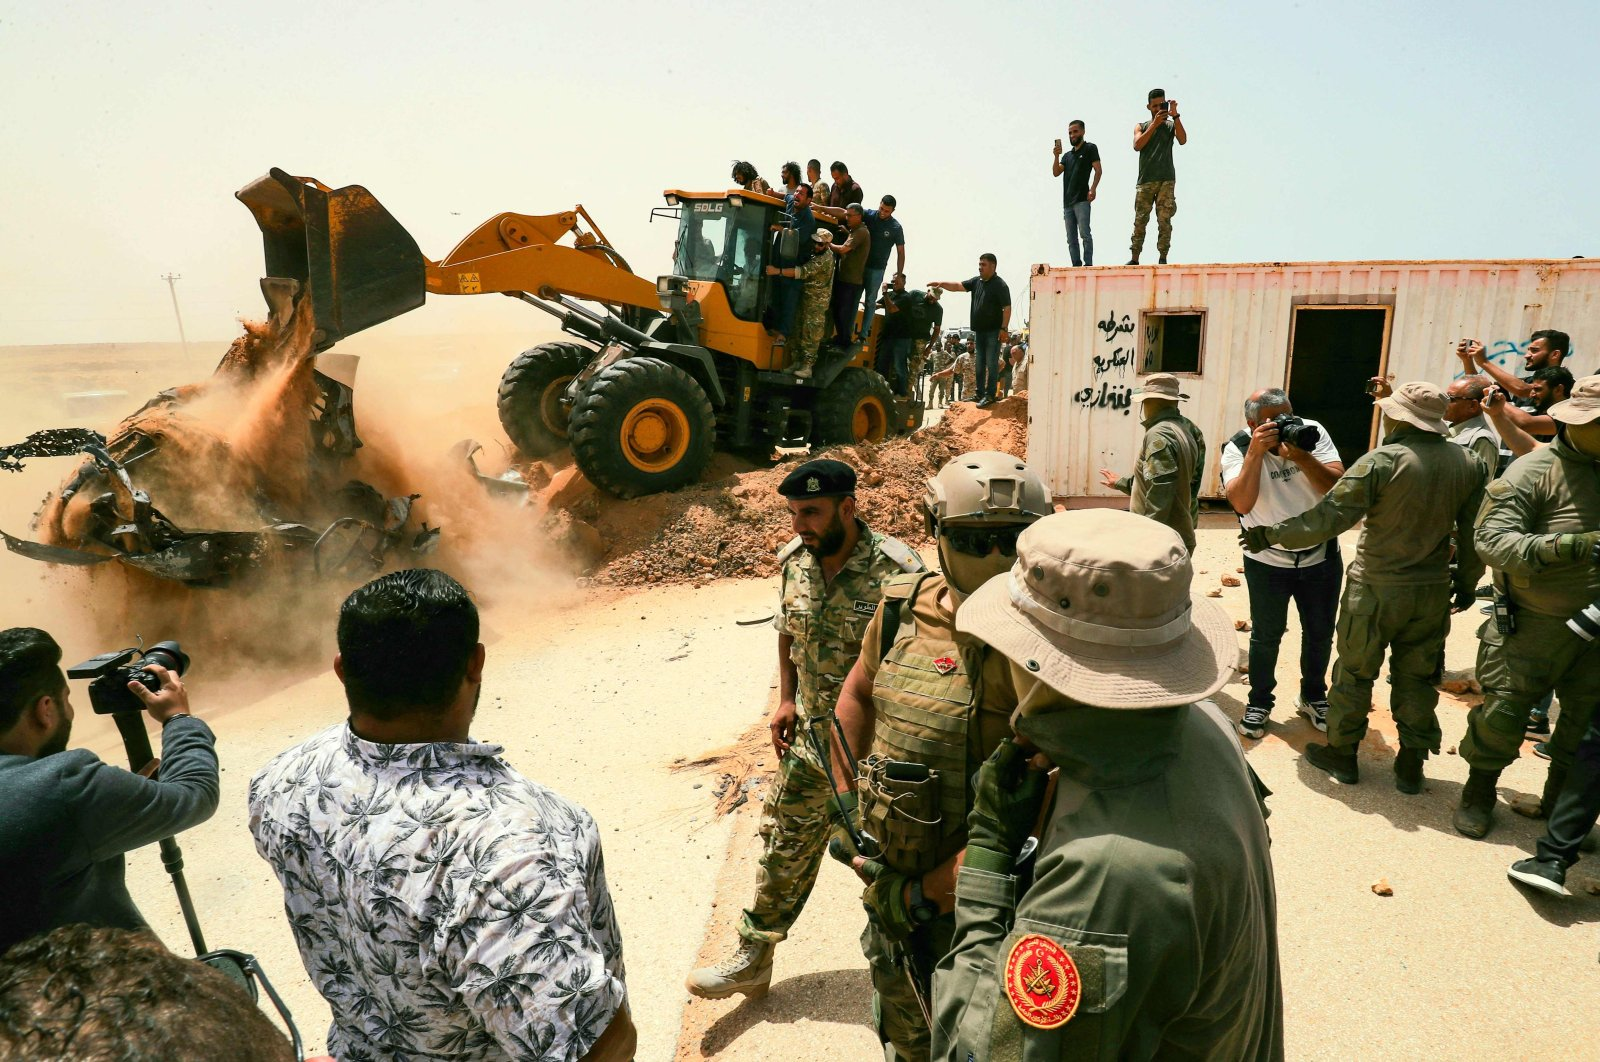 People cheer as an excavator removes rubble during a ceremony marking the reopening of a road between the cities of Misrata and Sirte, in the town of Buwairat al-Hassoun, Libya, June 20, 2021. (AFP Photo)